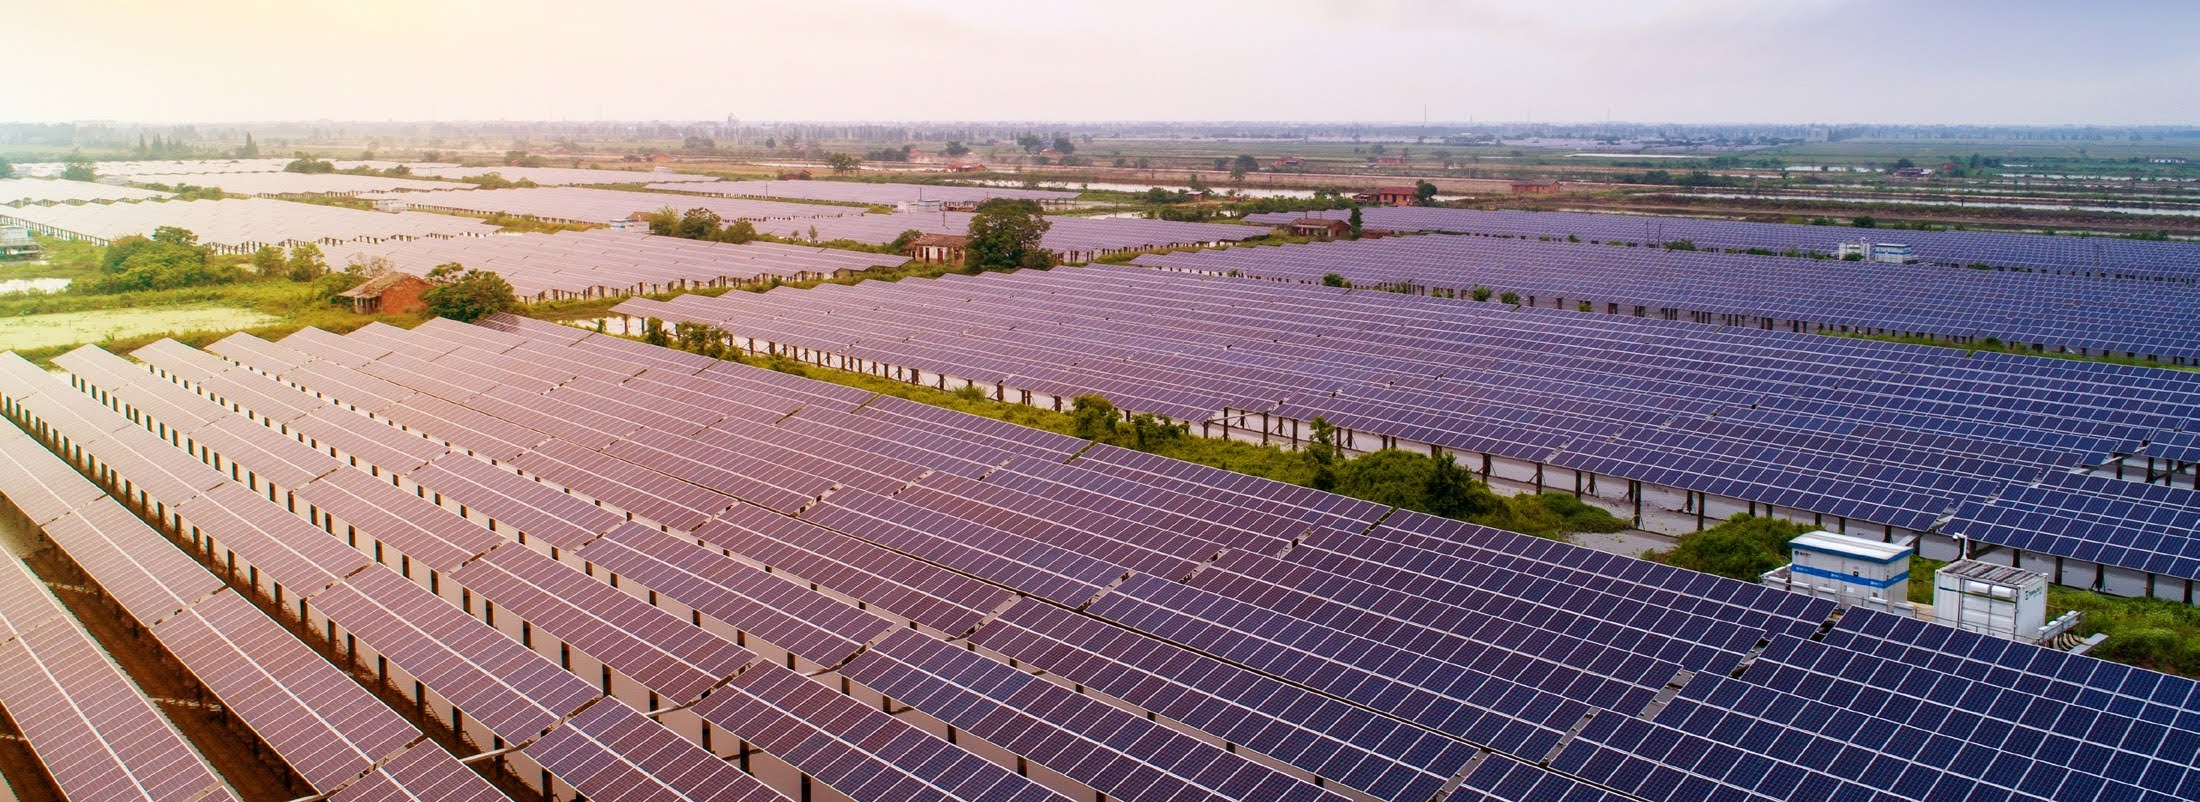 Understand Renewable Energy and Emissions to Become More Sustainable Value Supply Chain Partner